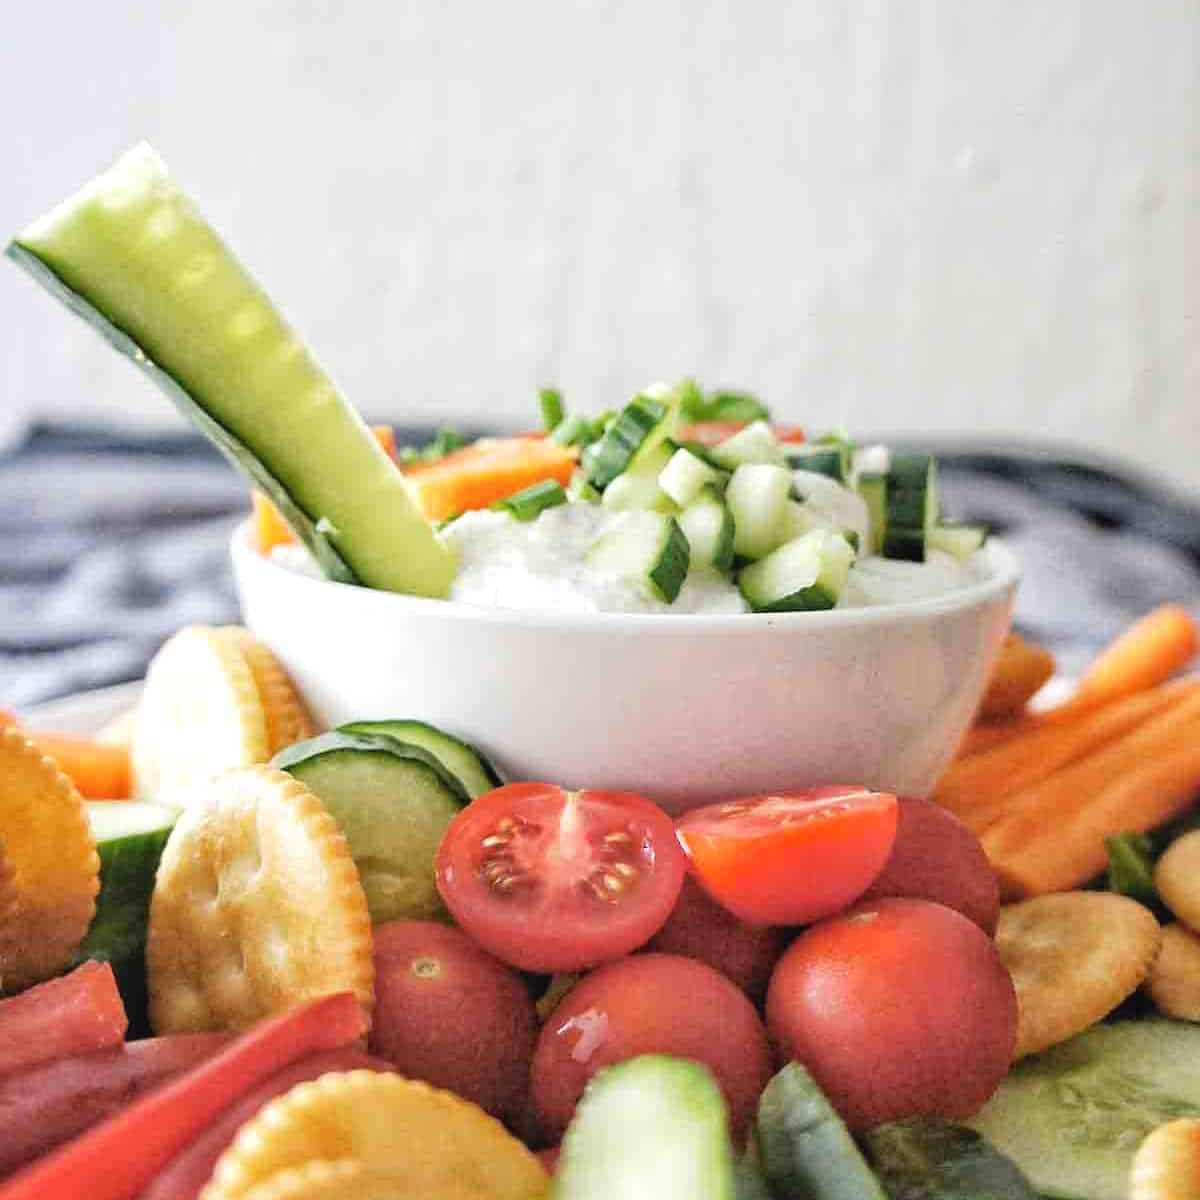 Long cucumber slice sticking out of small bowl of dip with crackers and vegetables around it